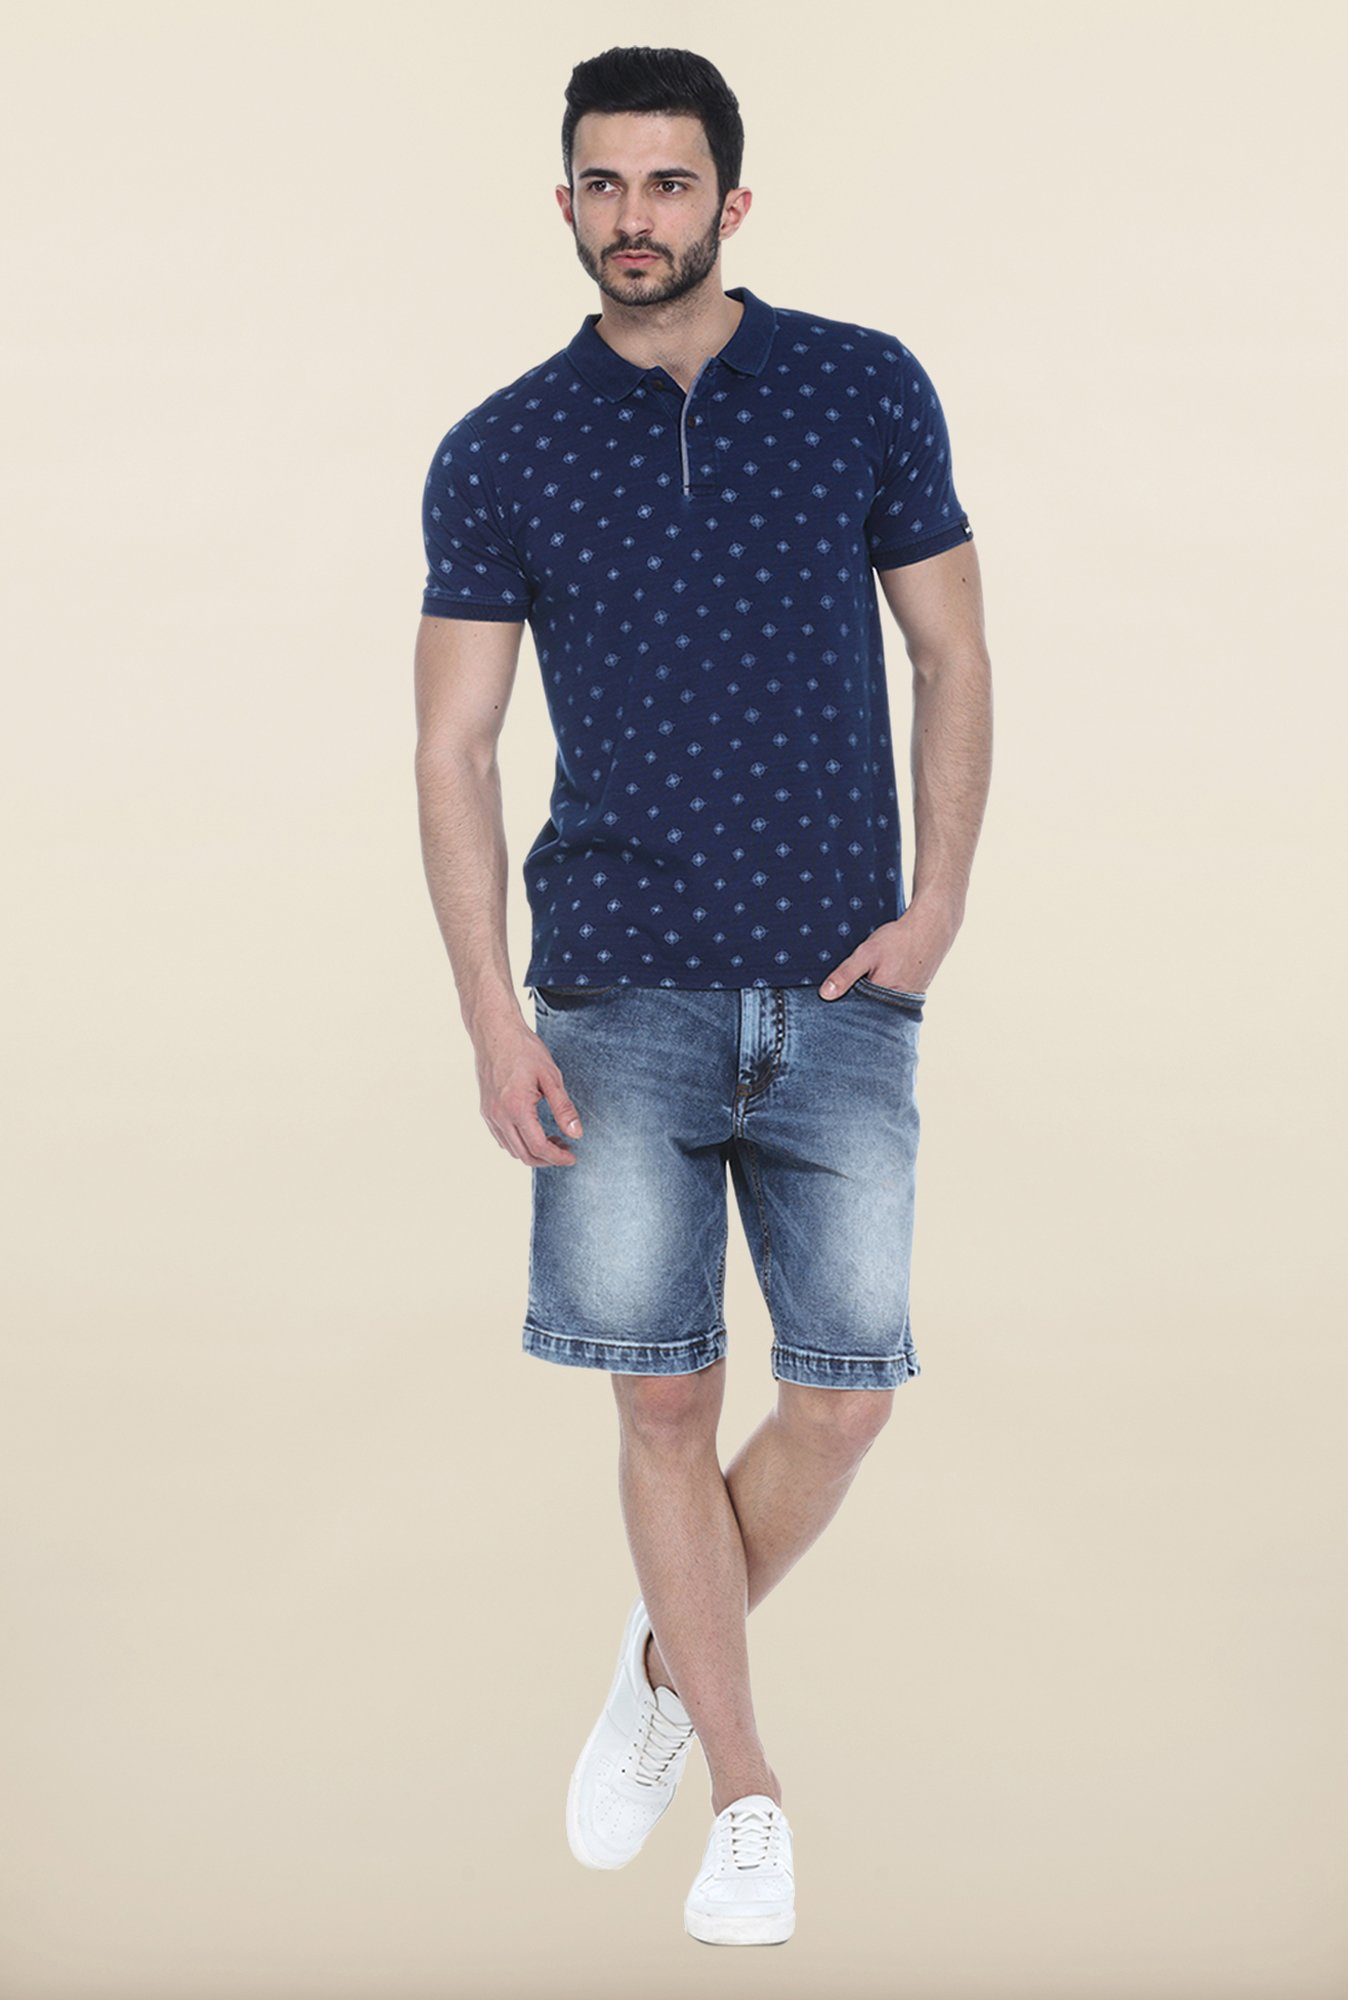 Basics Navy Blue Polo T-Shirt